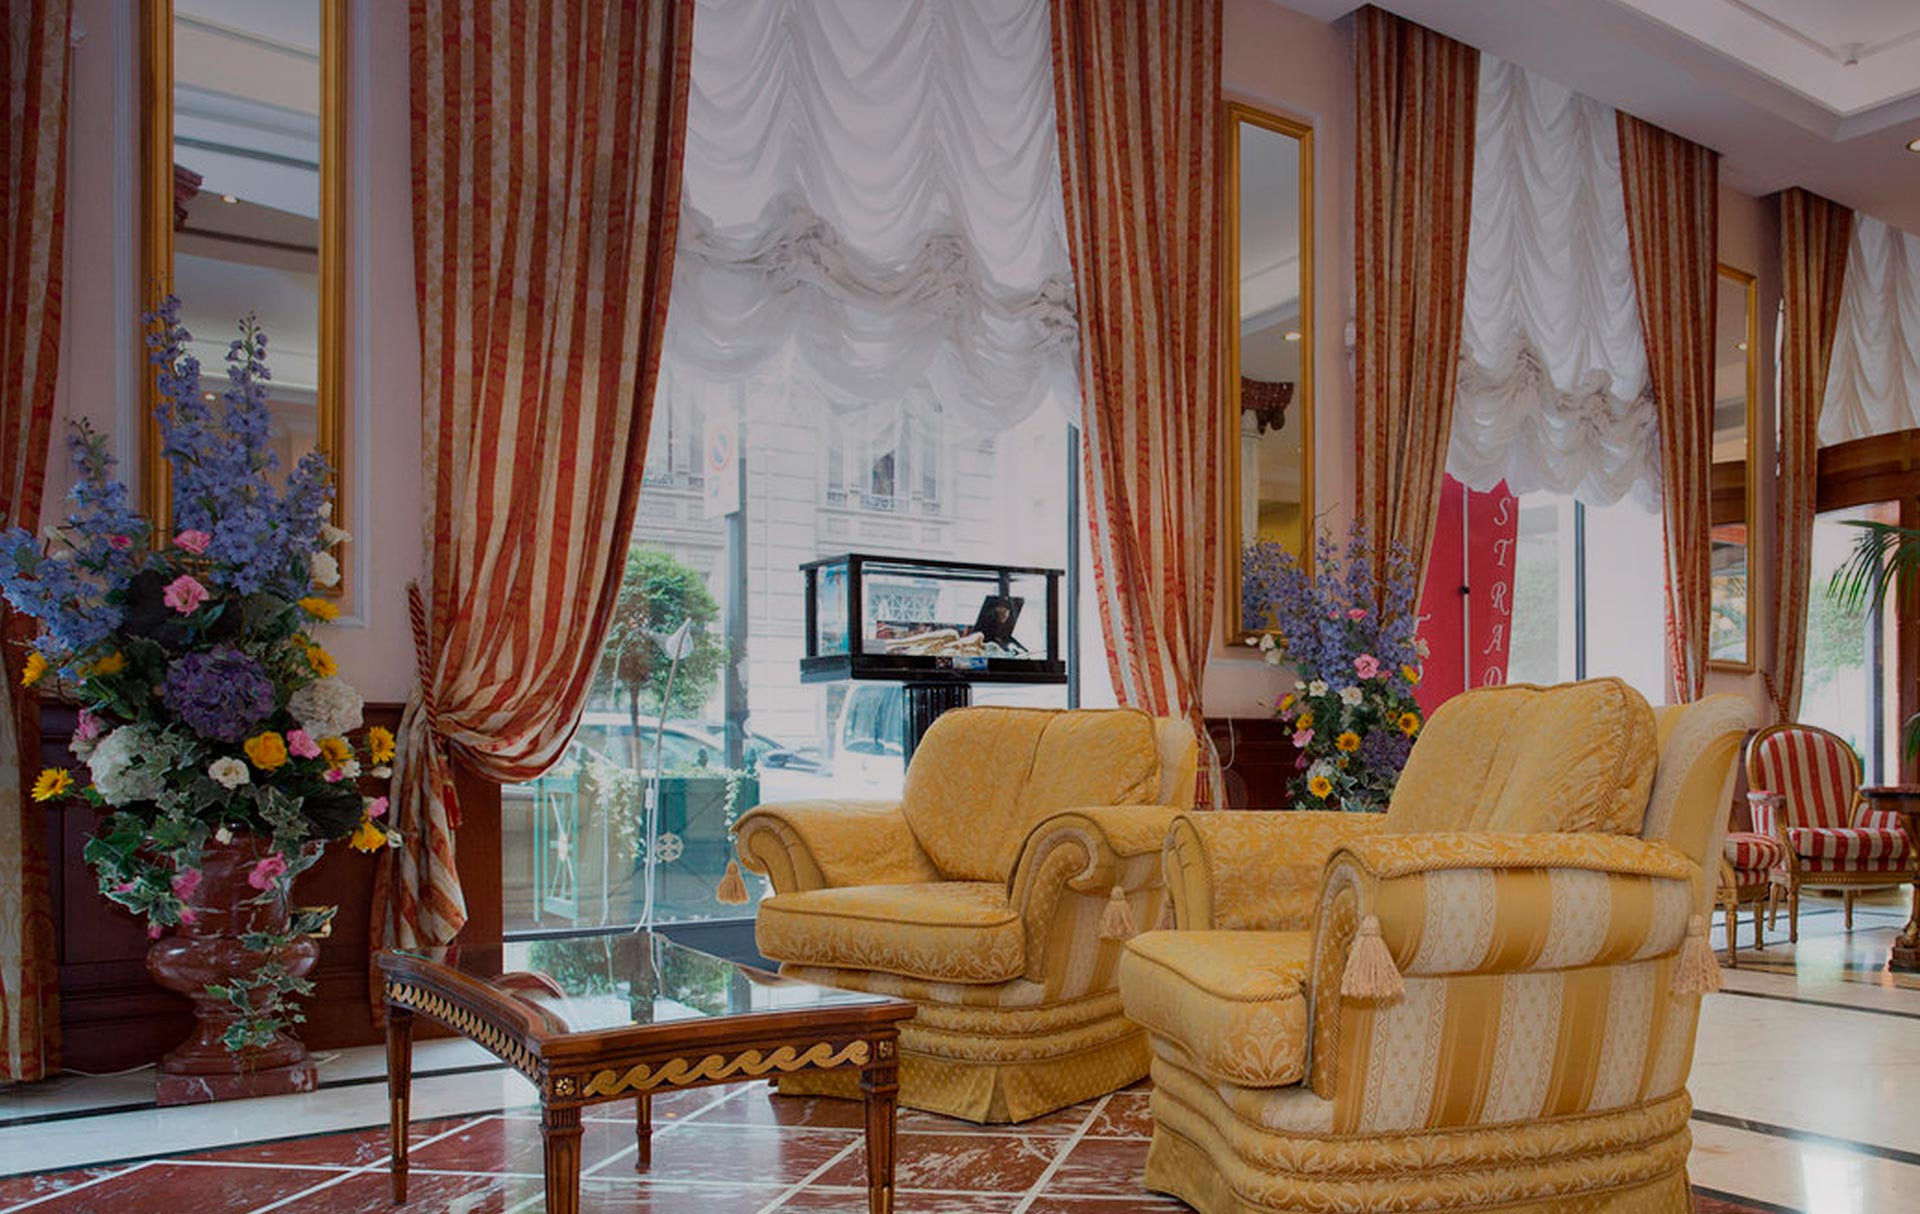 SPECIAL HOTEL FOR YOUR WONDERFUL STAY IN MILAN ITALY